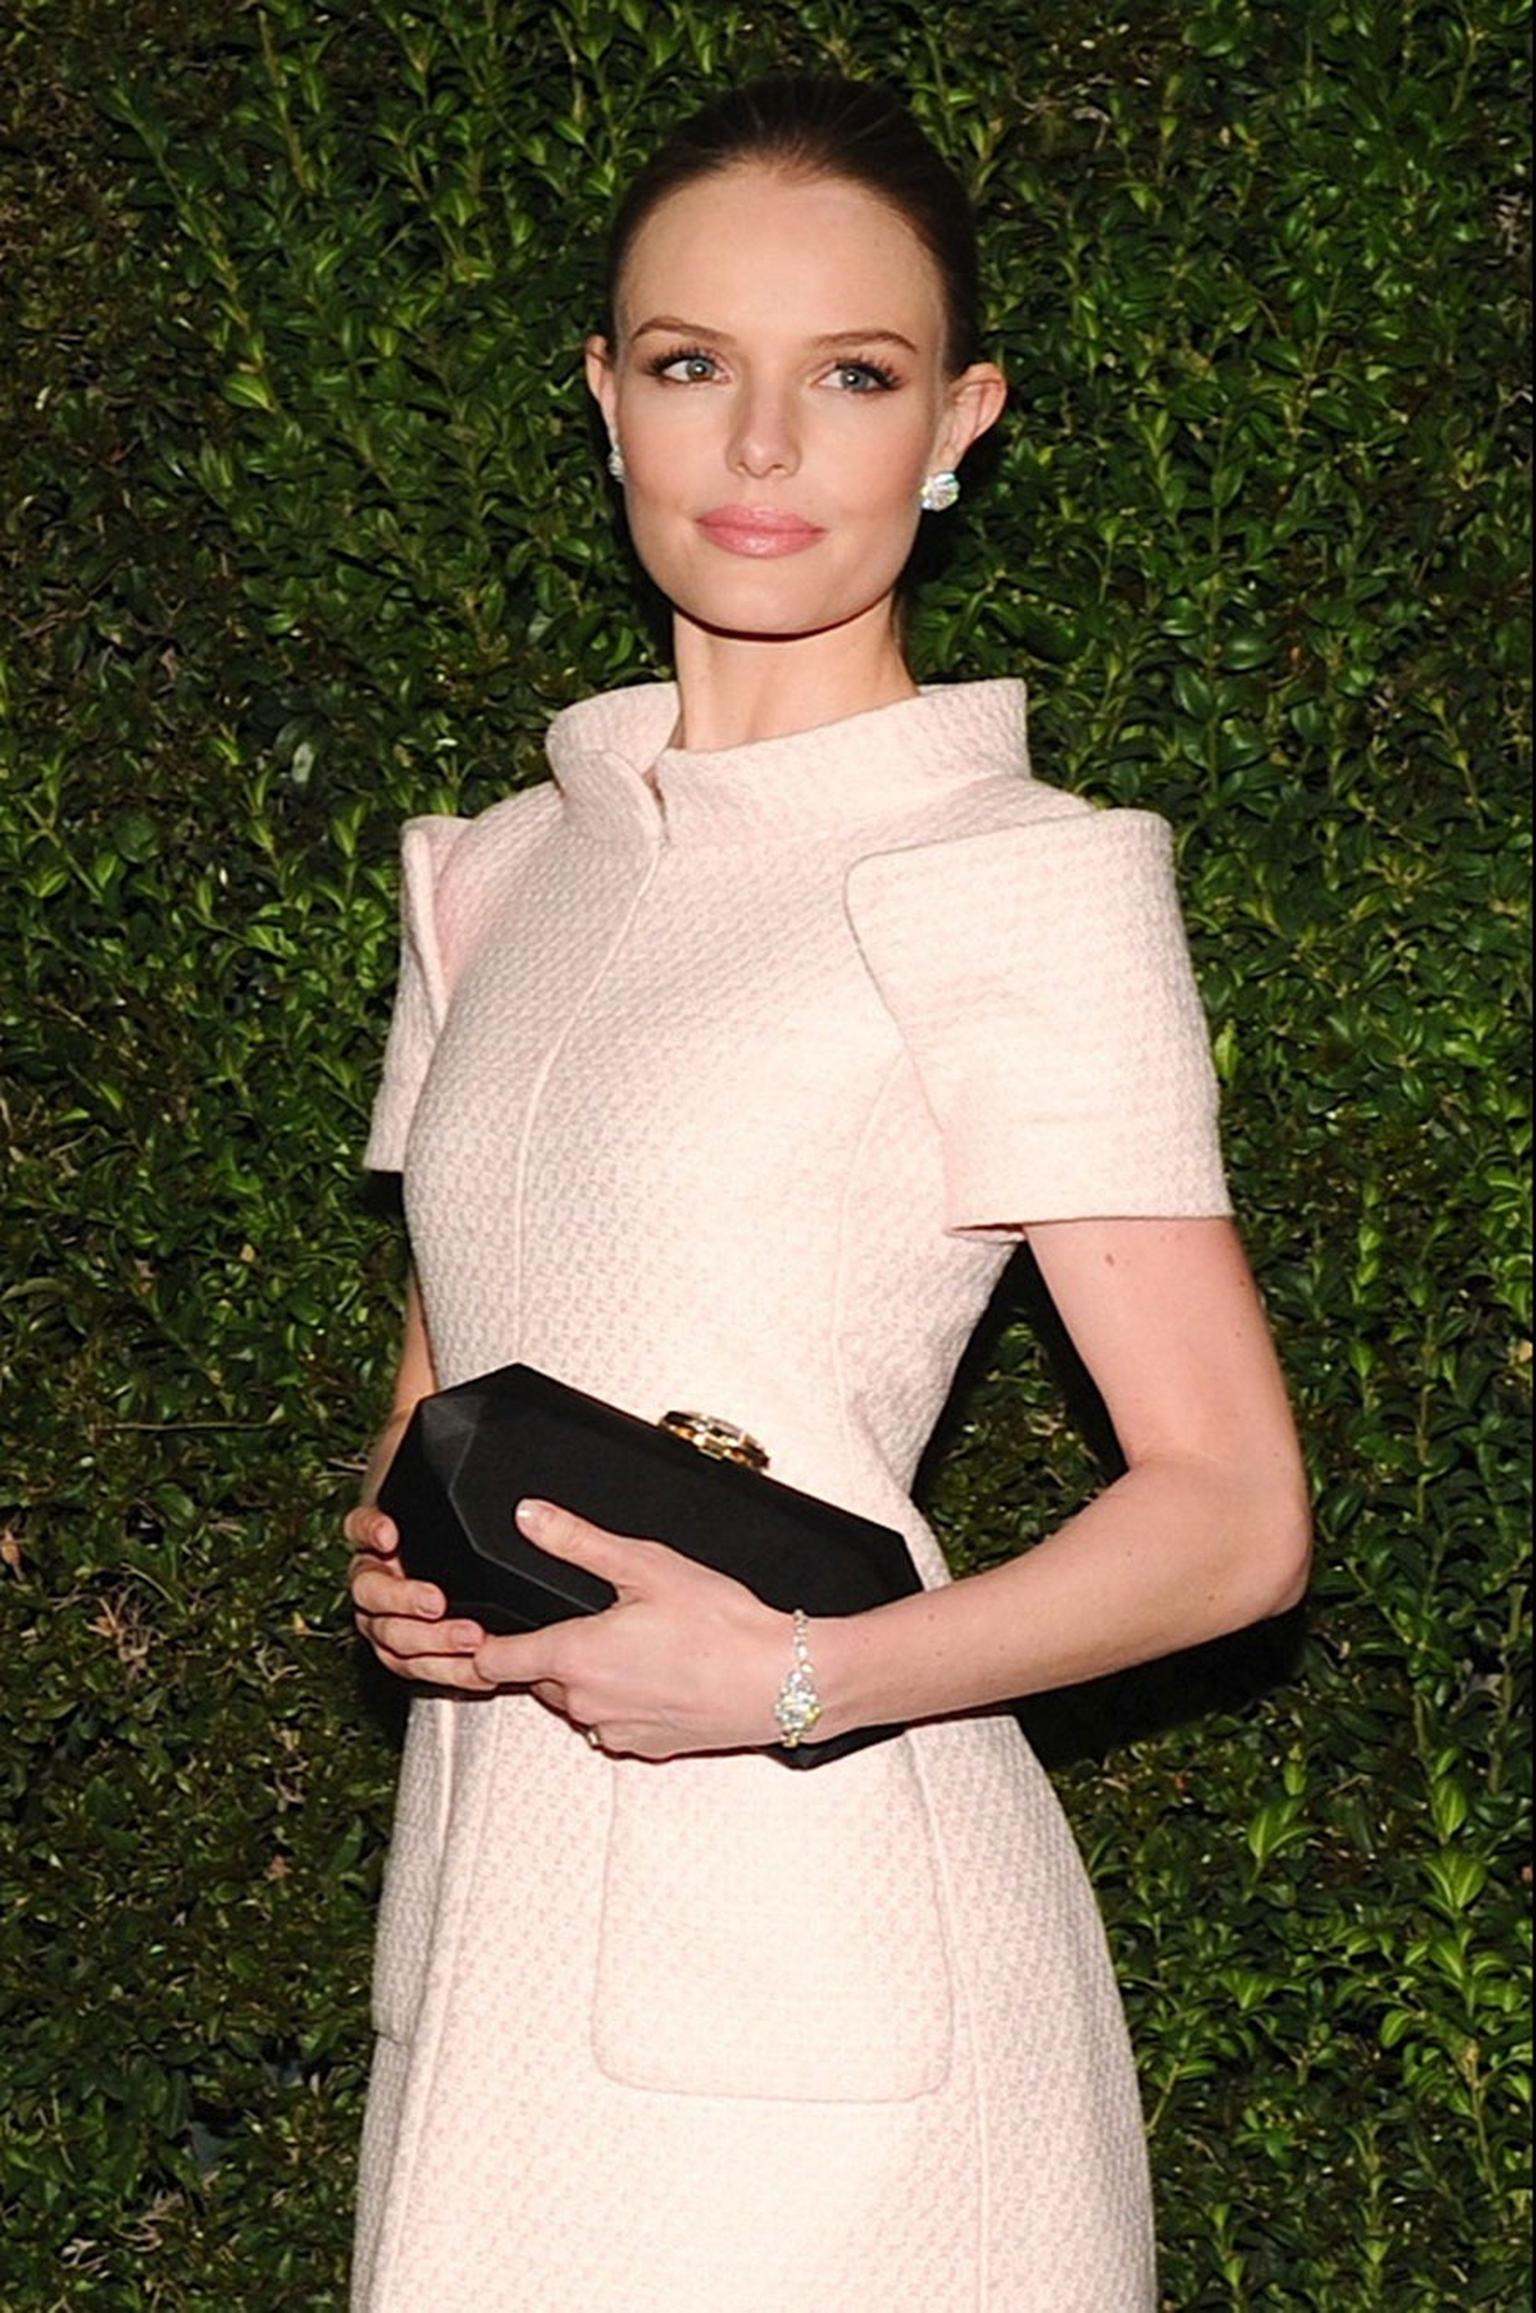 Kate-Bosworth-Chanel-and-Charles-Finch-Oscars-Dinner-23-fevrier-2013.jpg